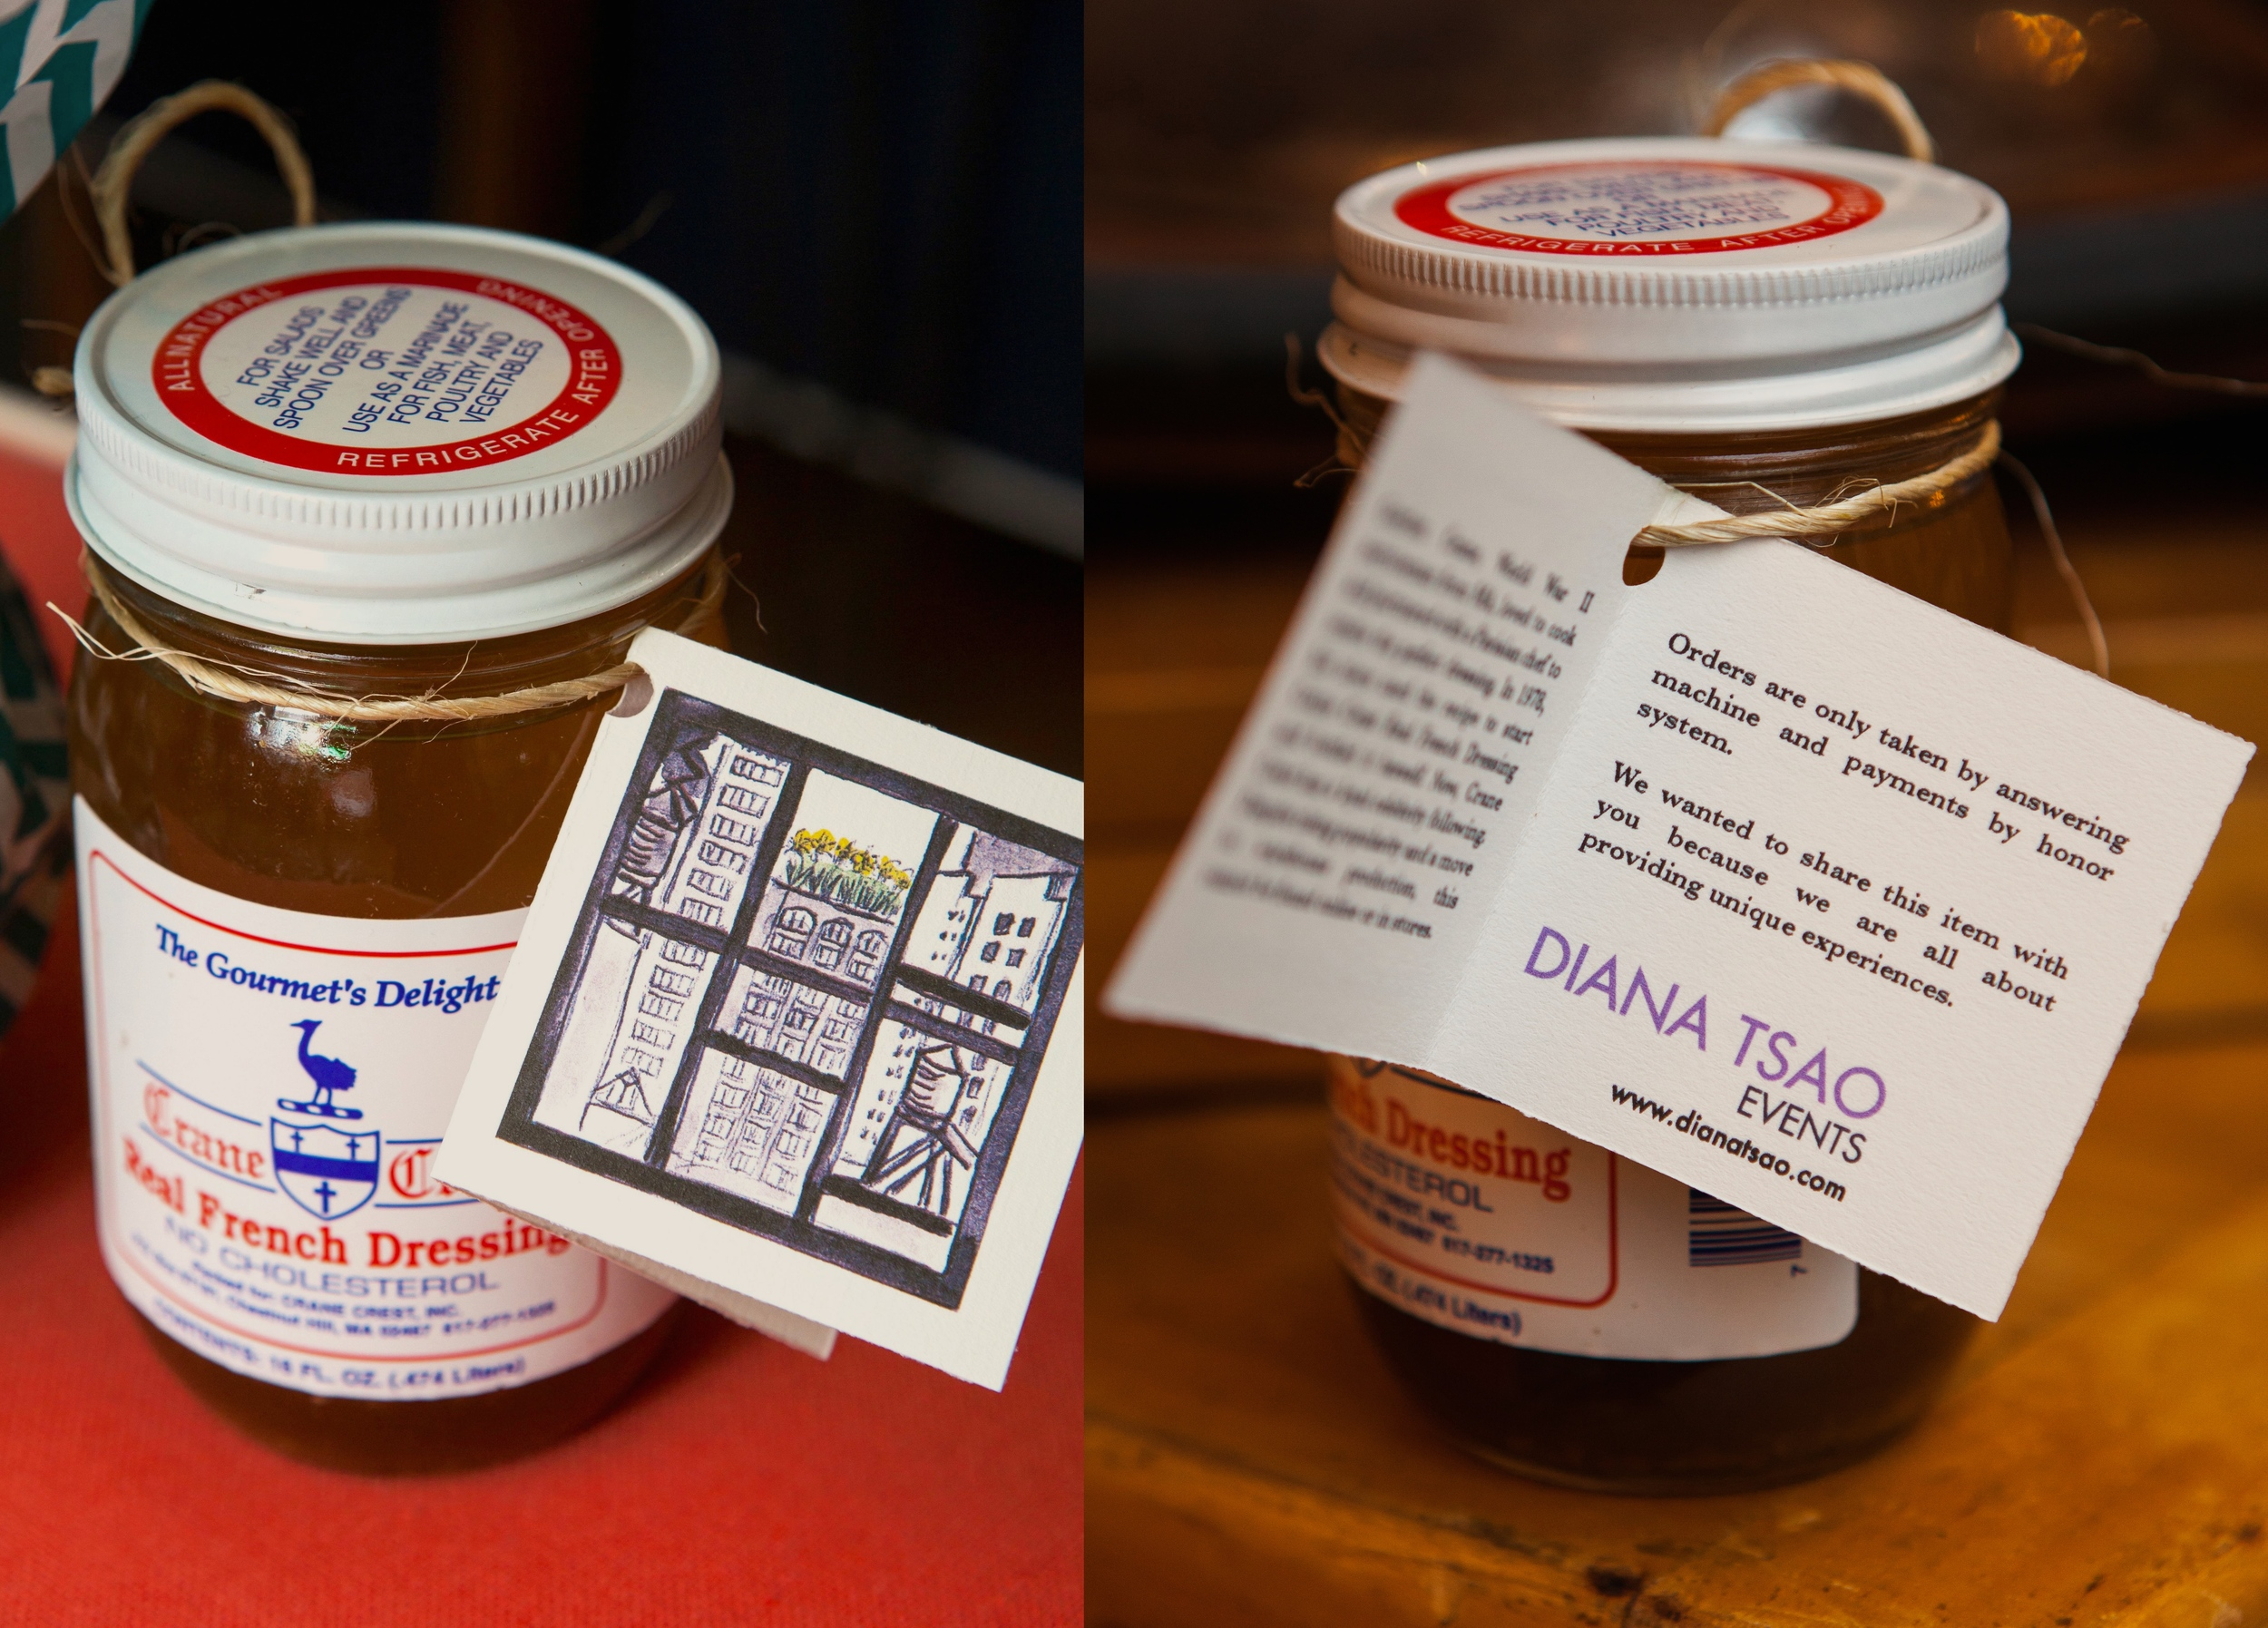 HARD-TO-FIND DRESSING PARTING GIFT FROM DIANA TSAO EVENTS